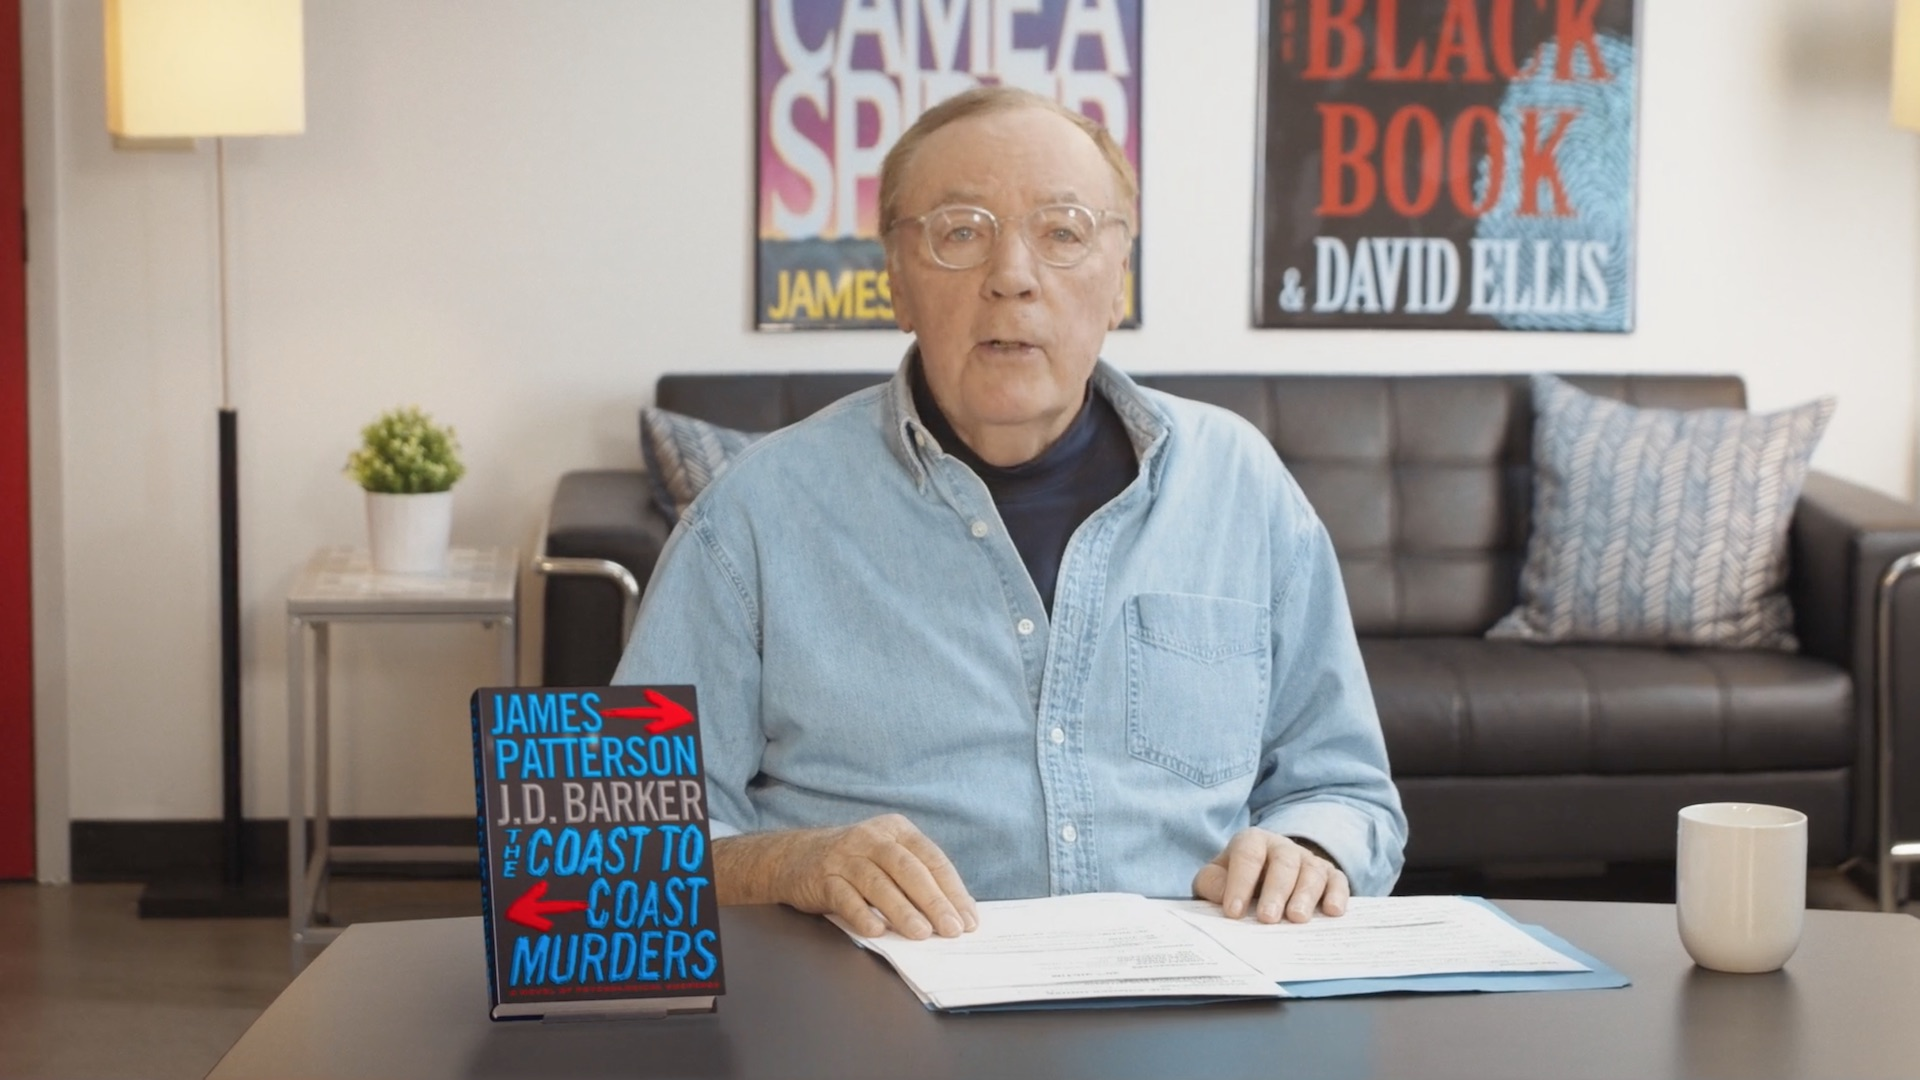 James Patterson at a table discussing his book Real Readers: The Coast to Coast Murders